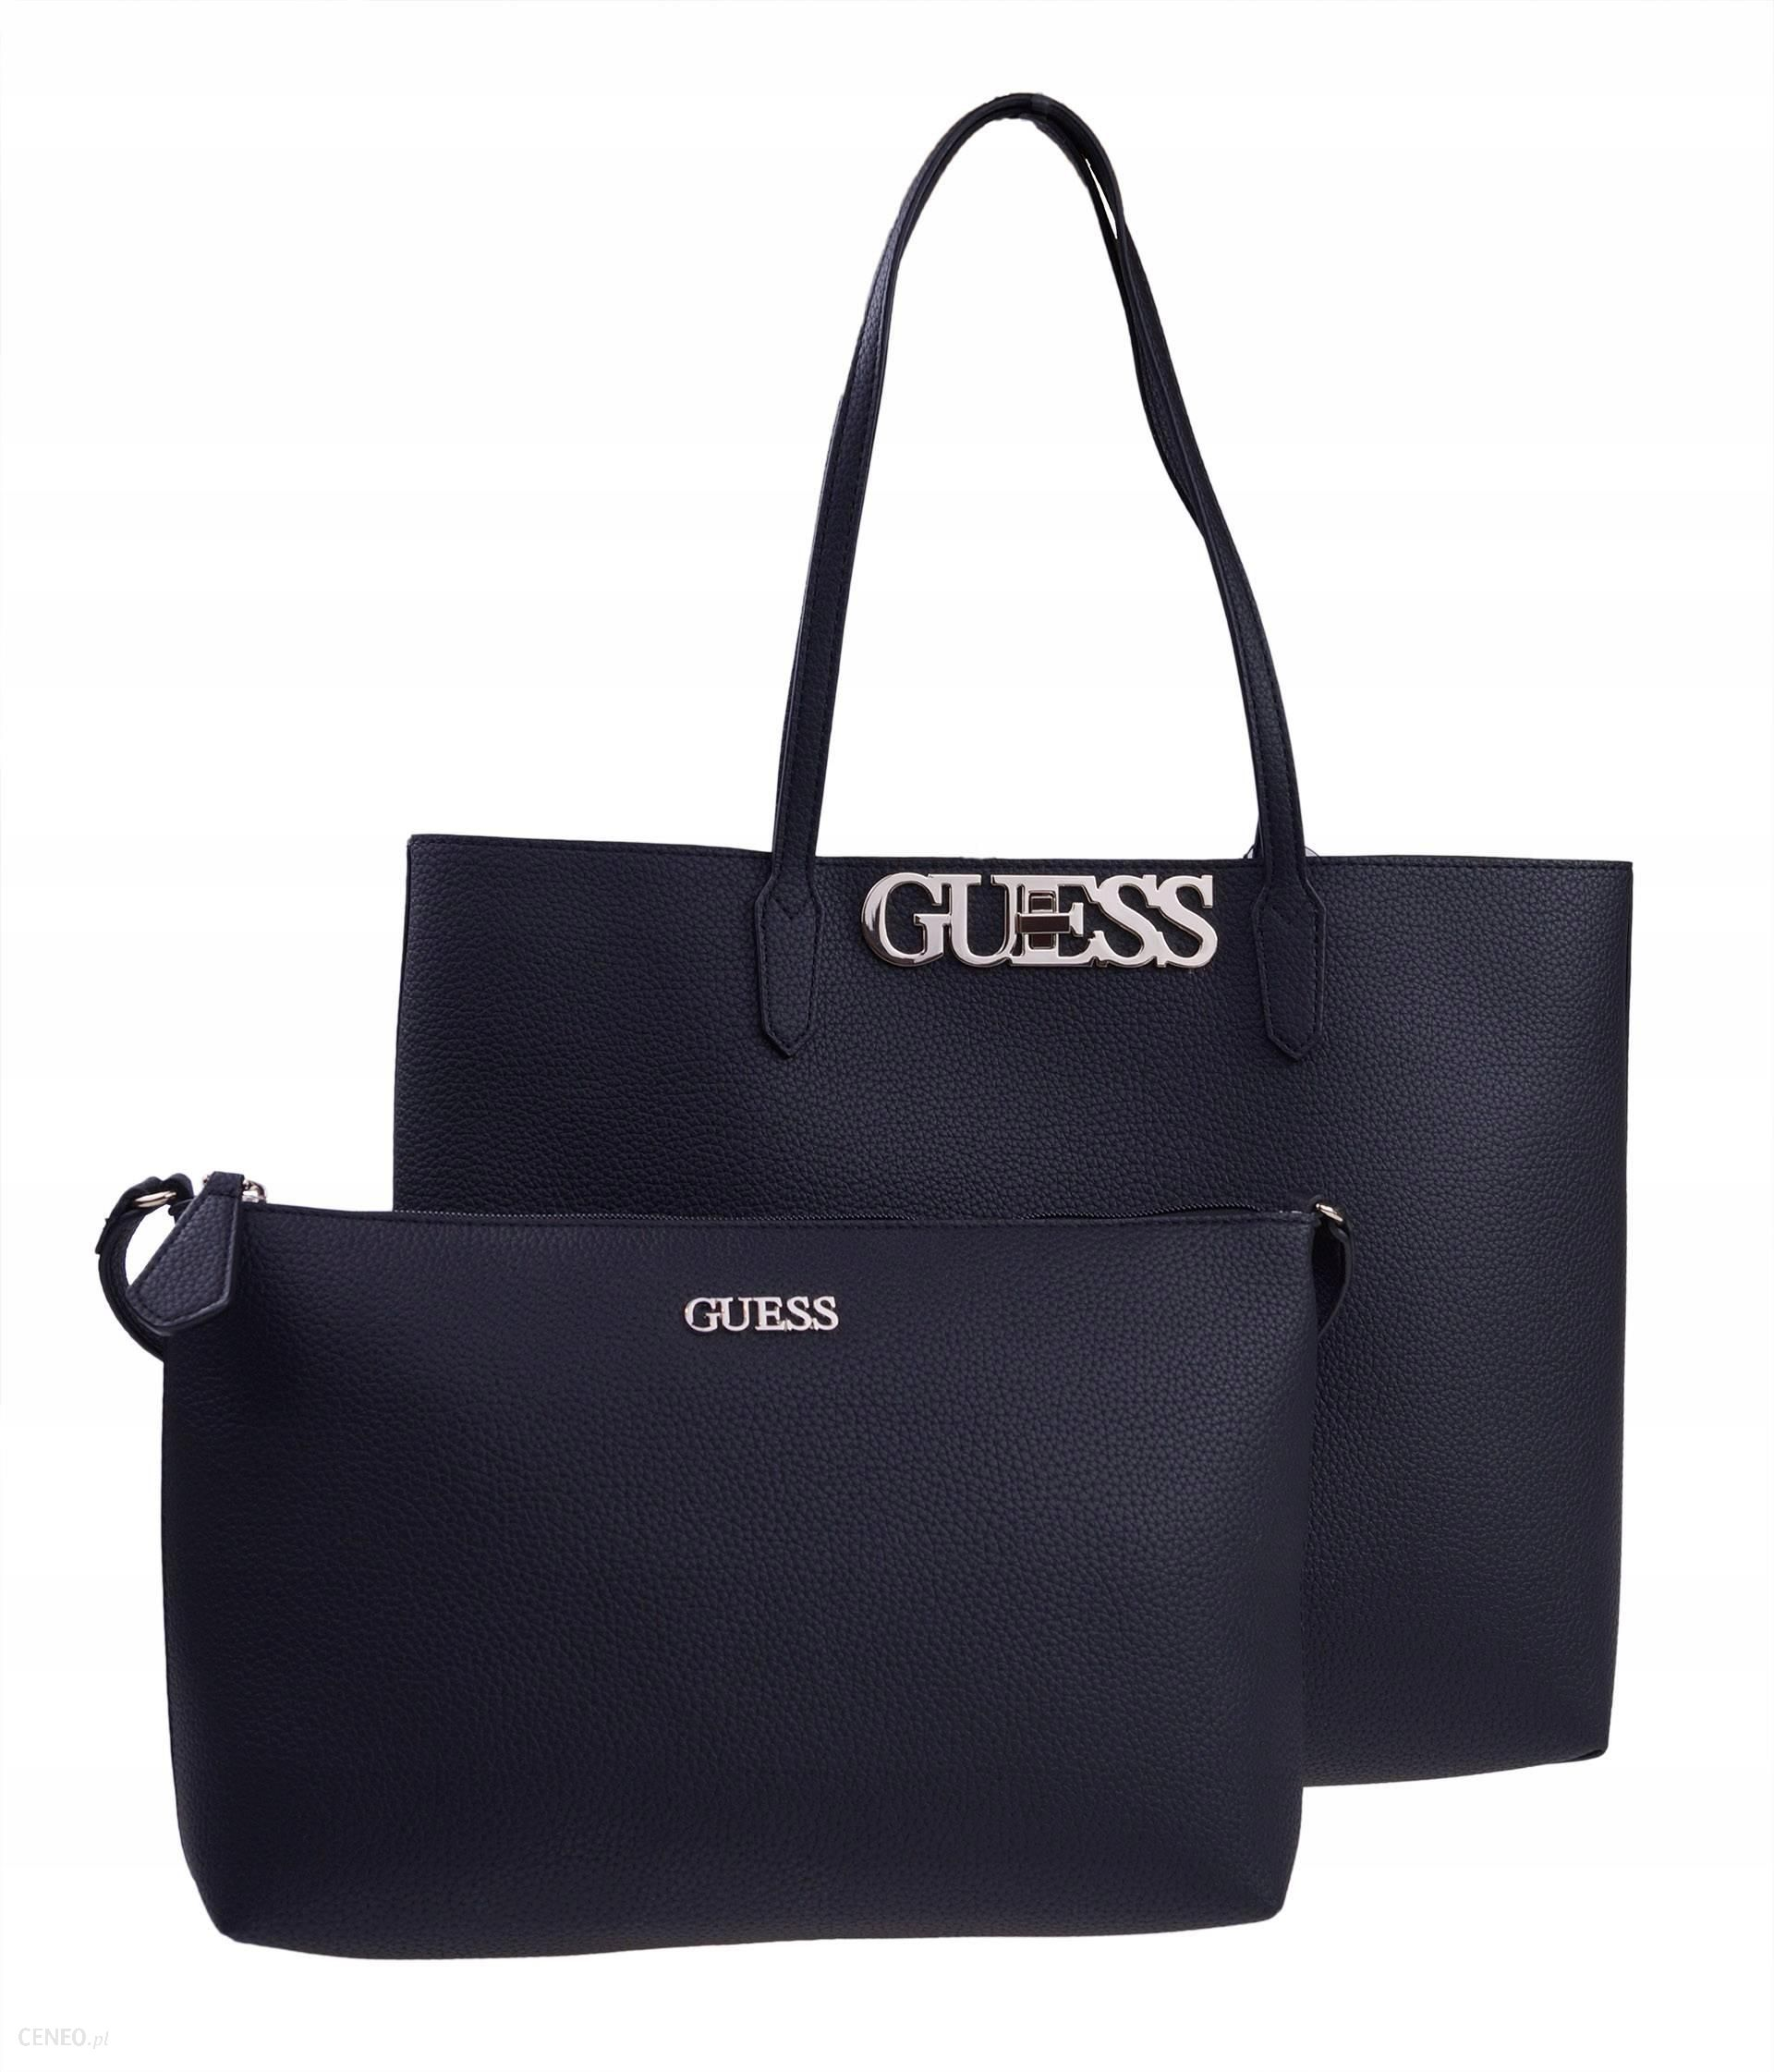 Torebka Guess Uptown Chic 2in1 Ceny i opinie Ceneo.pl